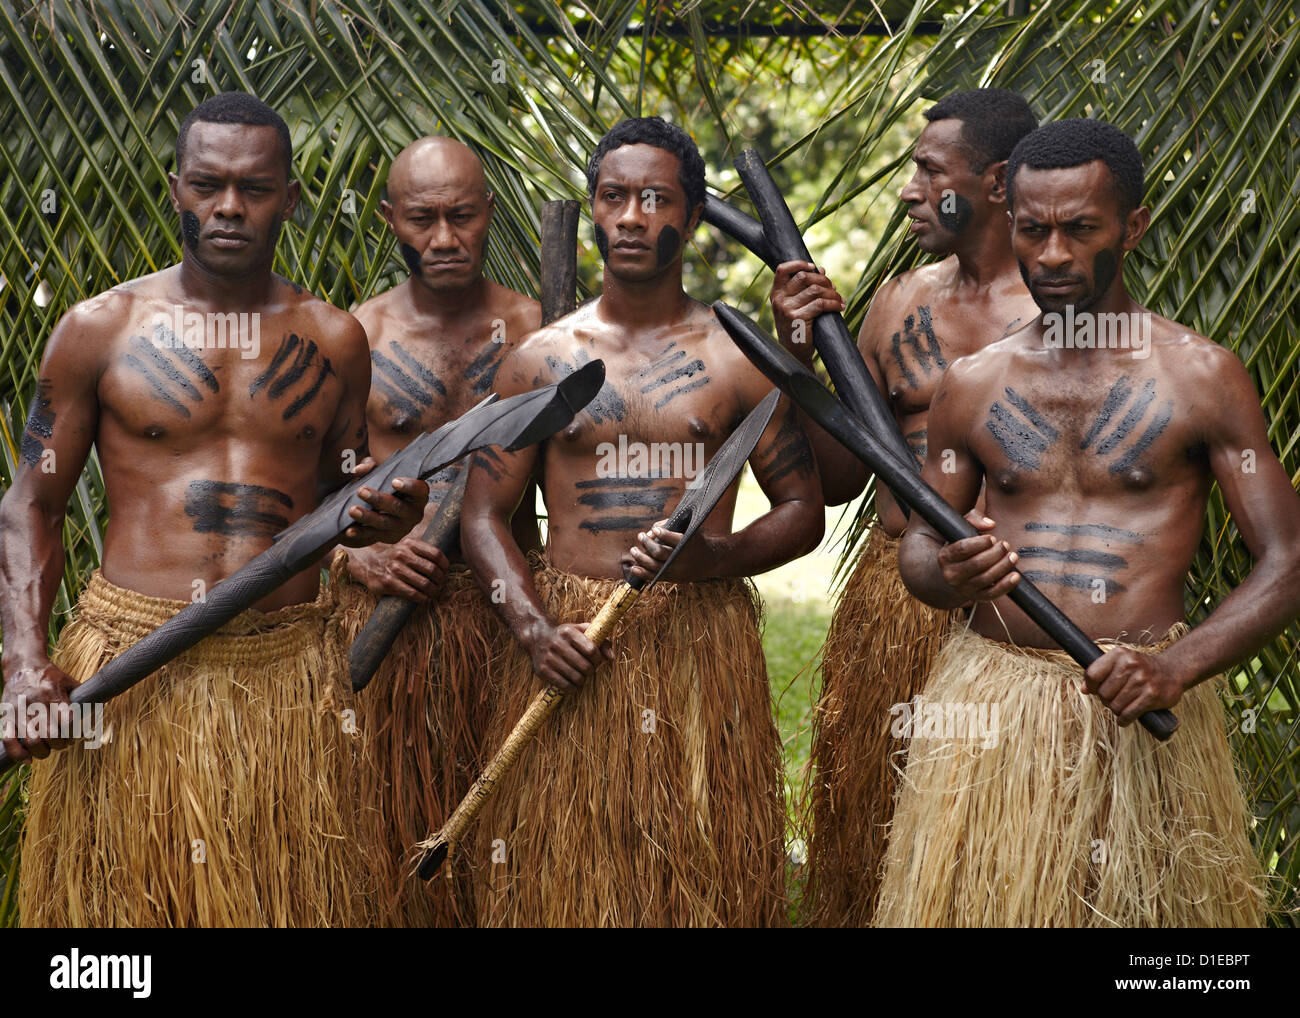 Authentic Fiji natives, First Landing Resort, Nalamu Beach, Vuda Point, Fiji, Pacific Islands, Pacific - Stock Image